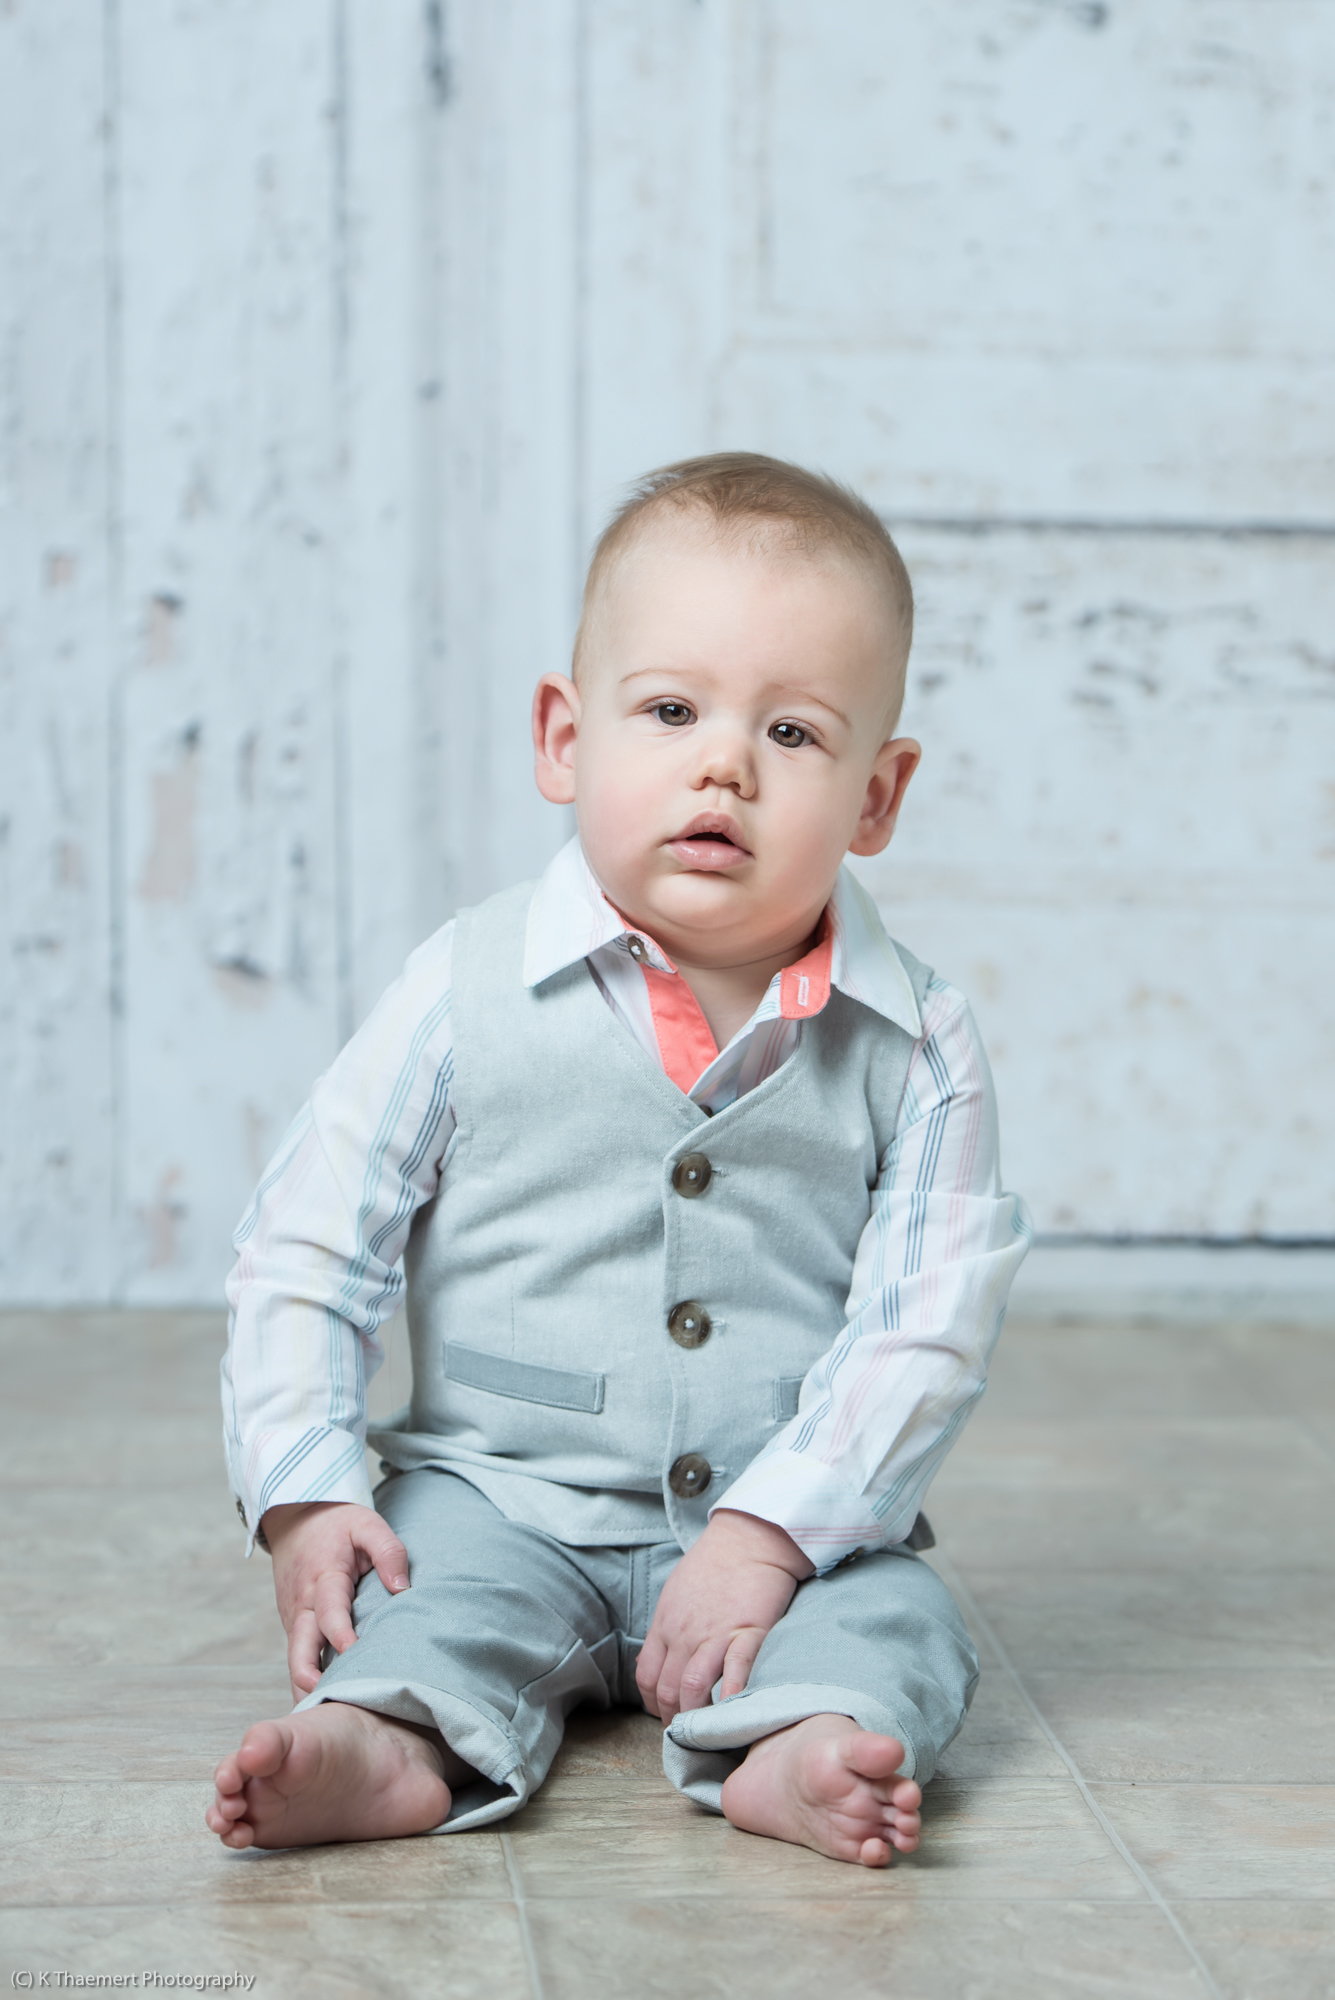 Sitting Baby boy dressed in Sunday best